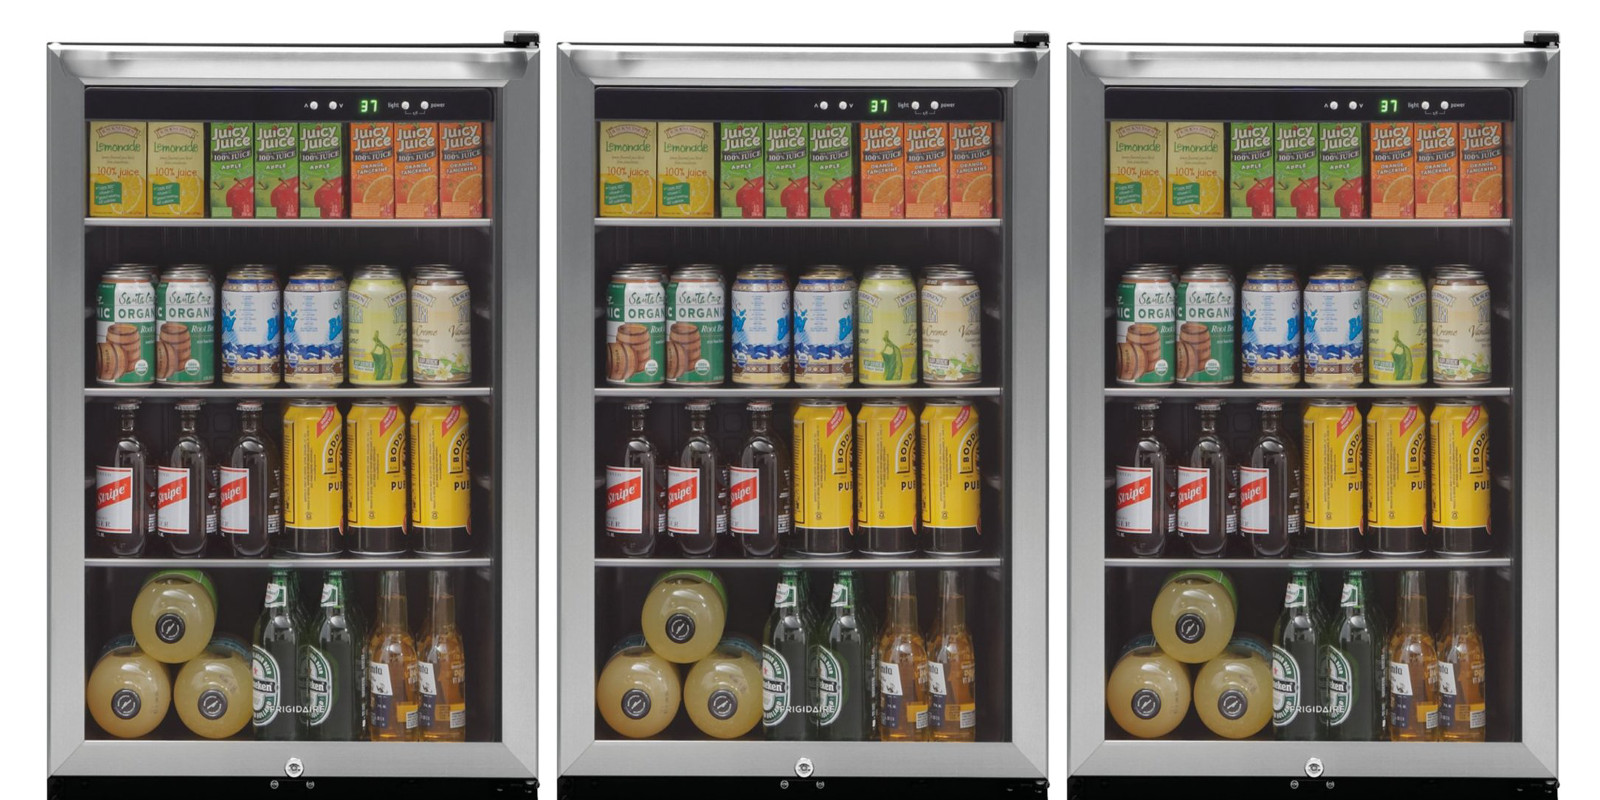 Put a Frigidaire 138-Can Mini Fridge in the man cave at up to $100 off